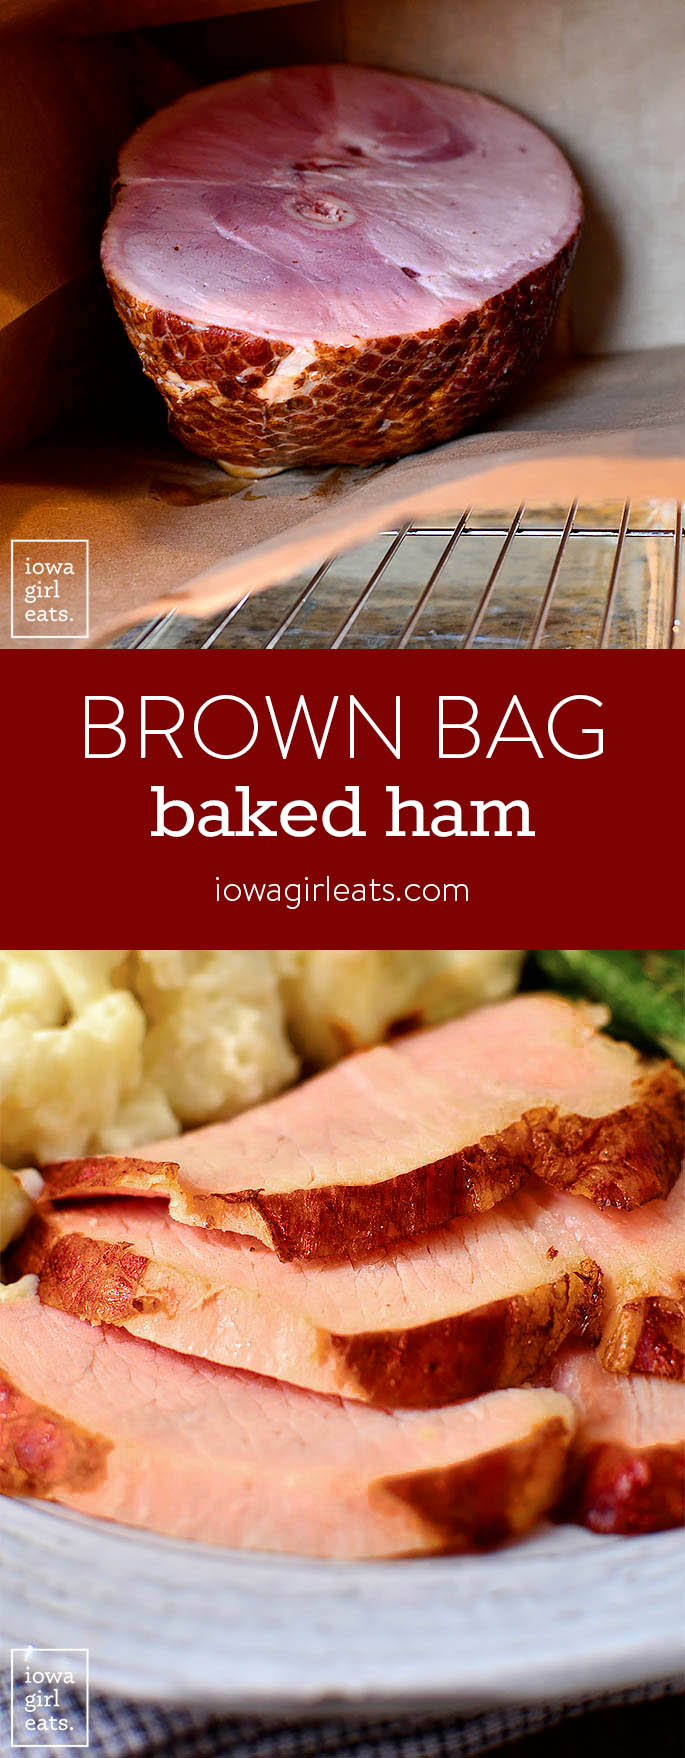 Brown Bag Baked Ham produces an unbelievably juicy and tender ham that's holiday-table ready! | iowagirleats.com